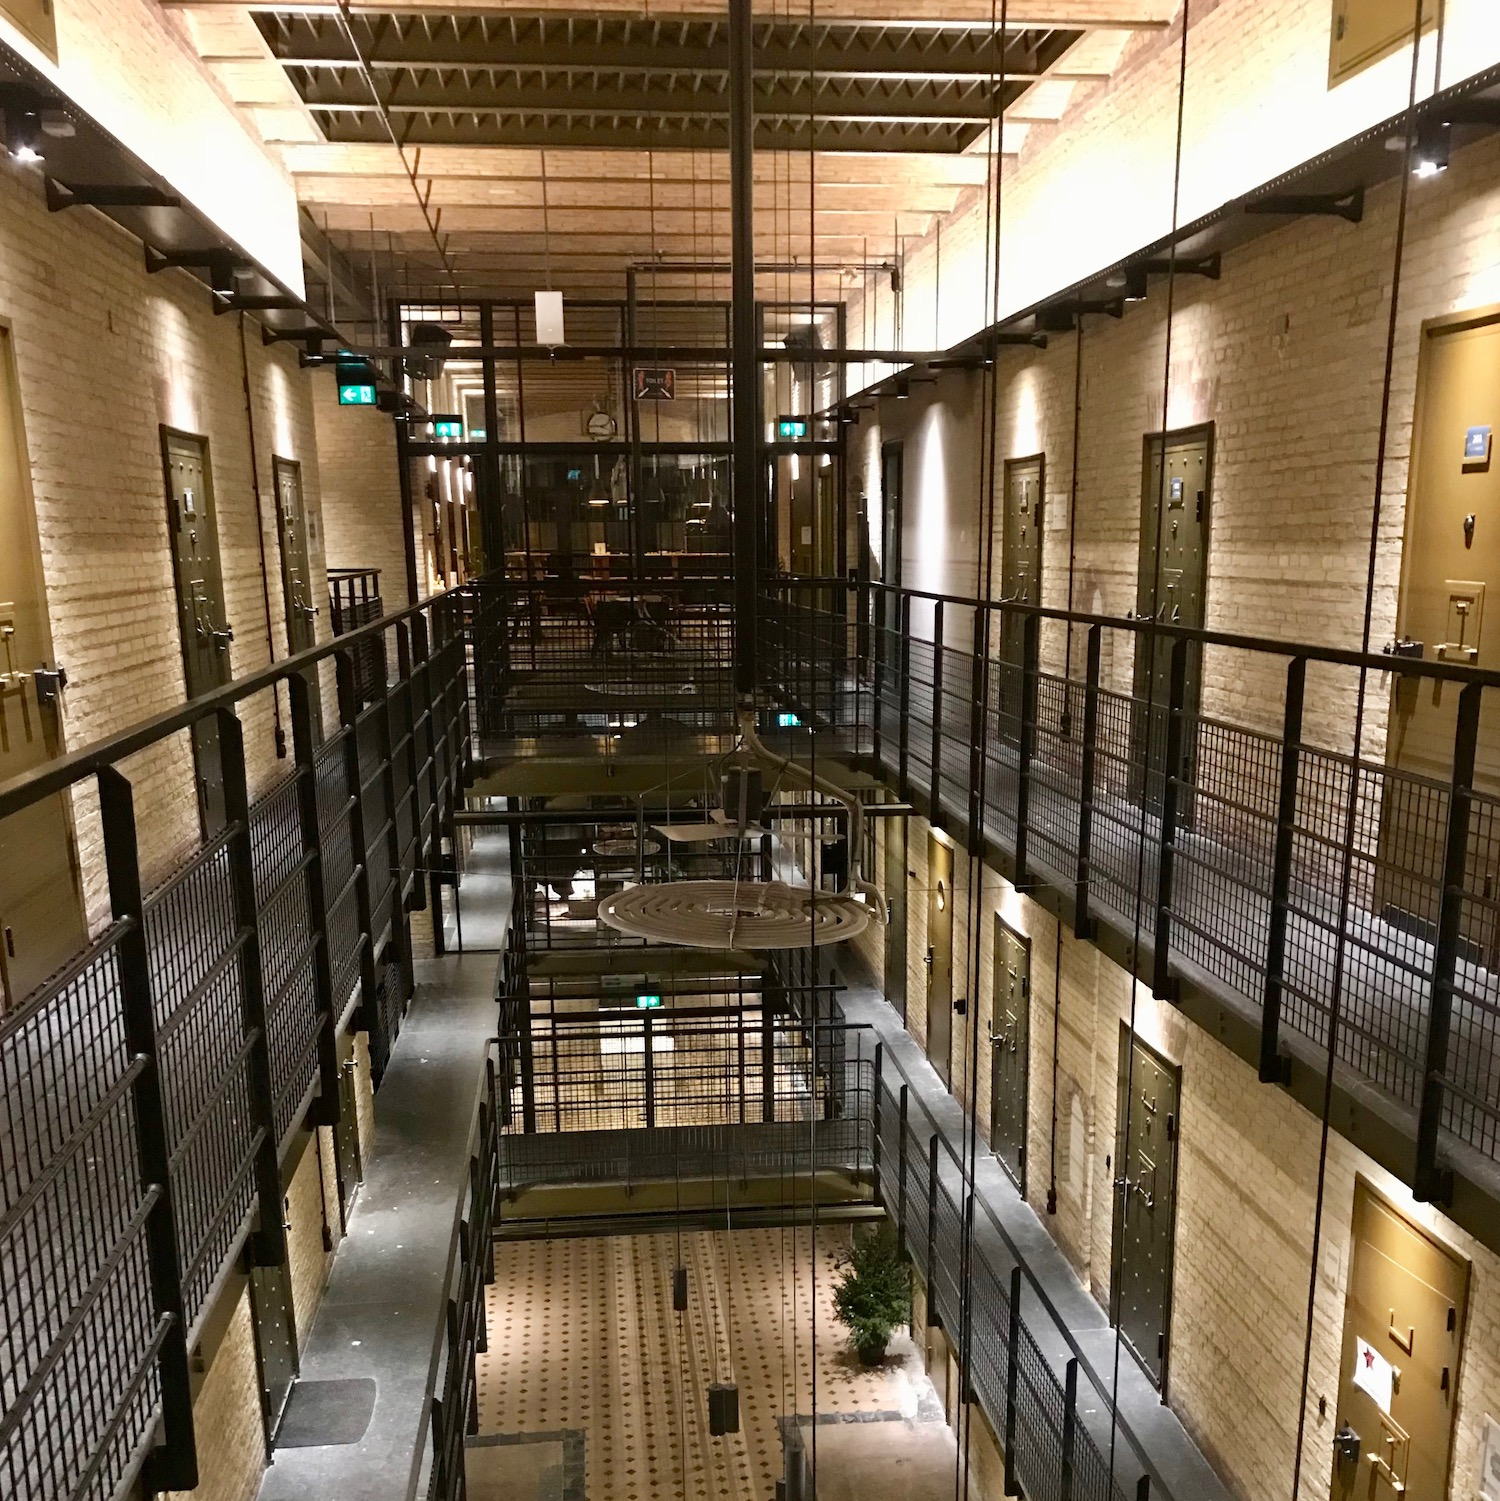 Fun Fact:  We  stayed in a jail  during our time in Leeuwarden. The former prison, called de Blokhuispoort, served as a penitentiary from the 1500's until its closure in 2007.